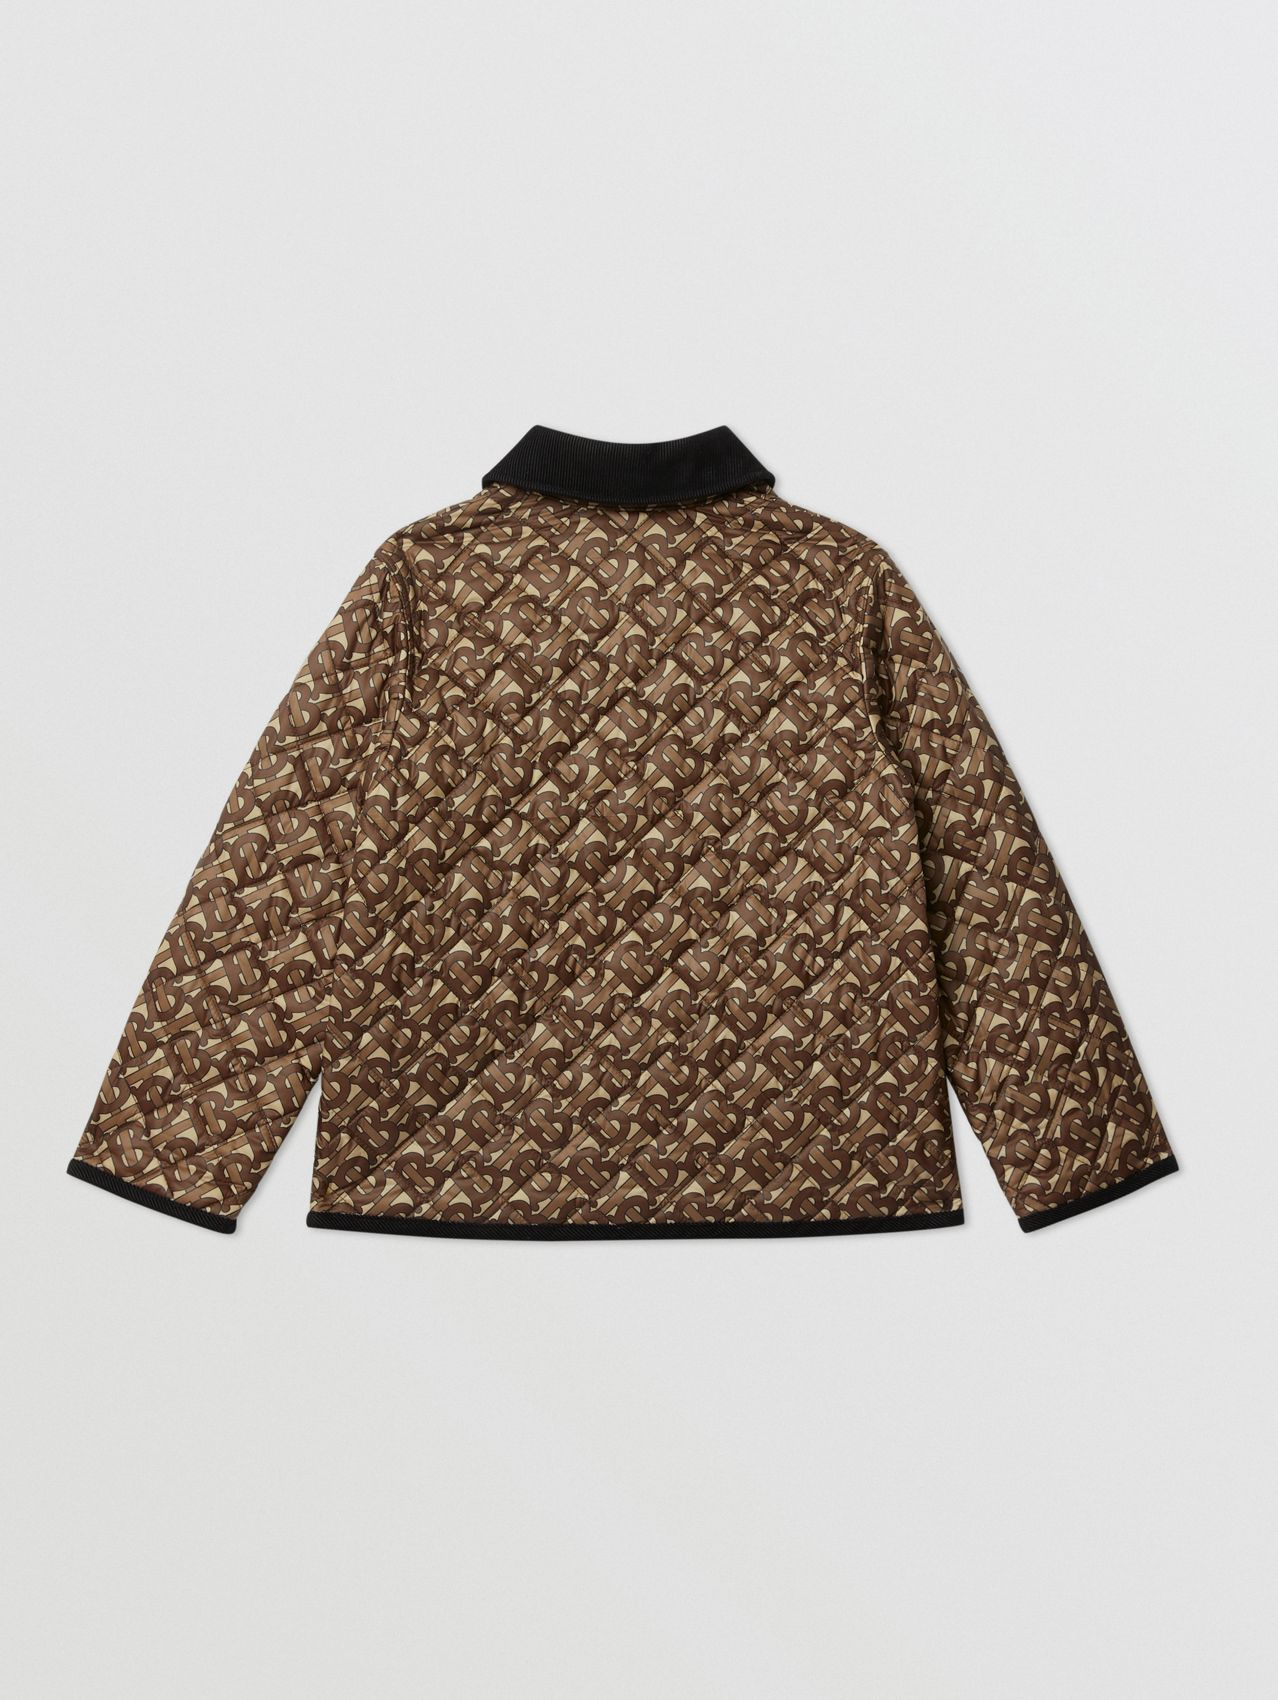 Monogram Print Diamond Quilted Jacket in Bridle Brown